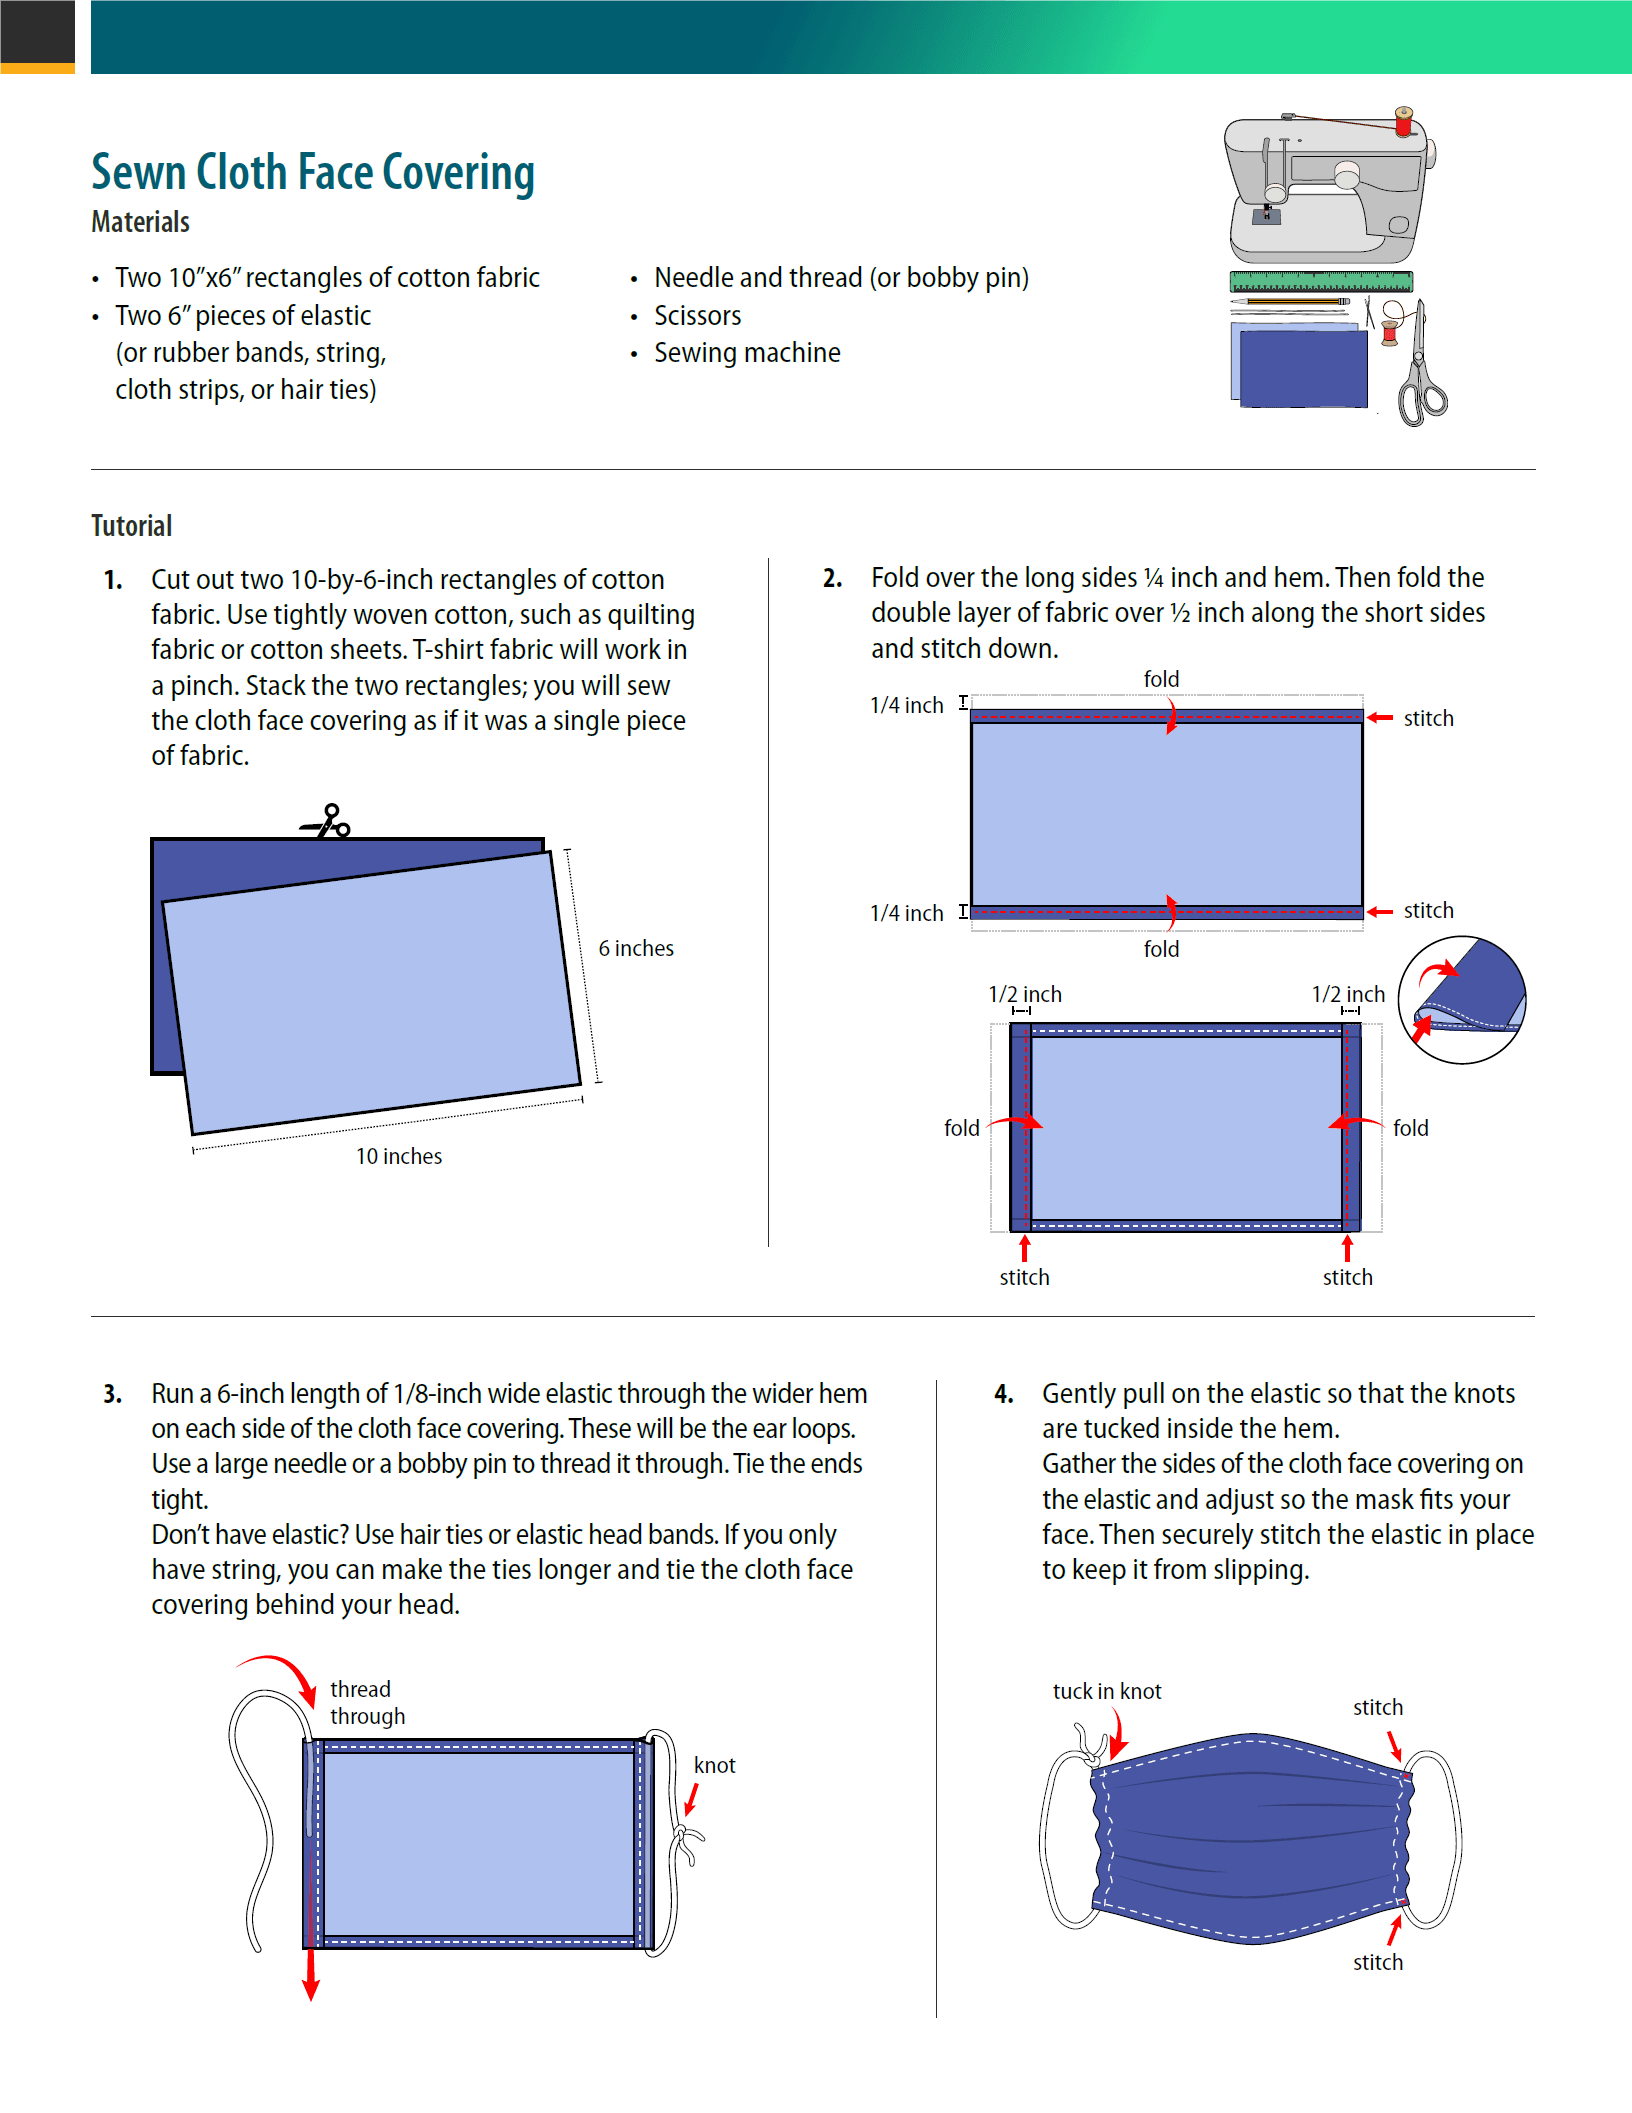 CDC Guidance - Face Covering 2